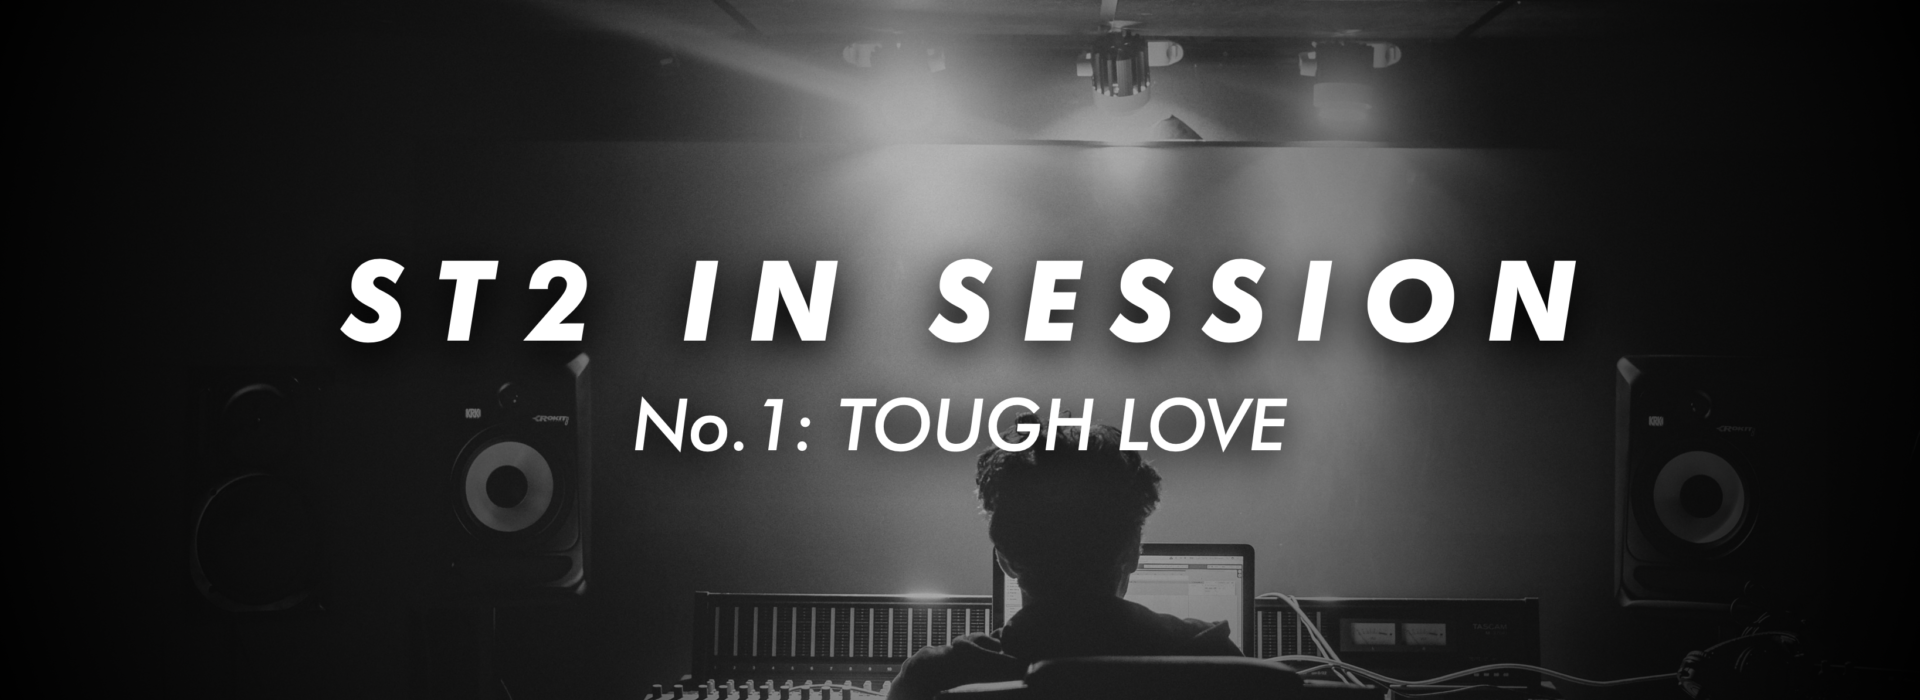 ST2 In Session No. 1: TOUGH LOVE